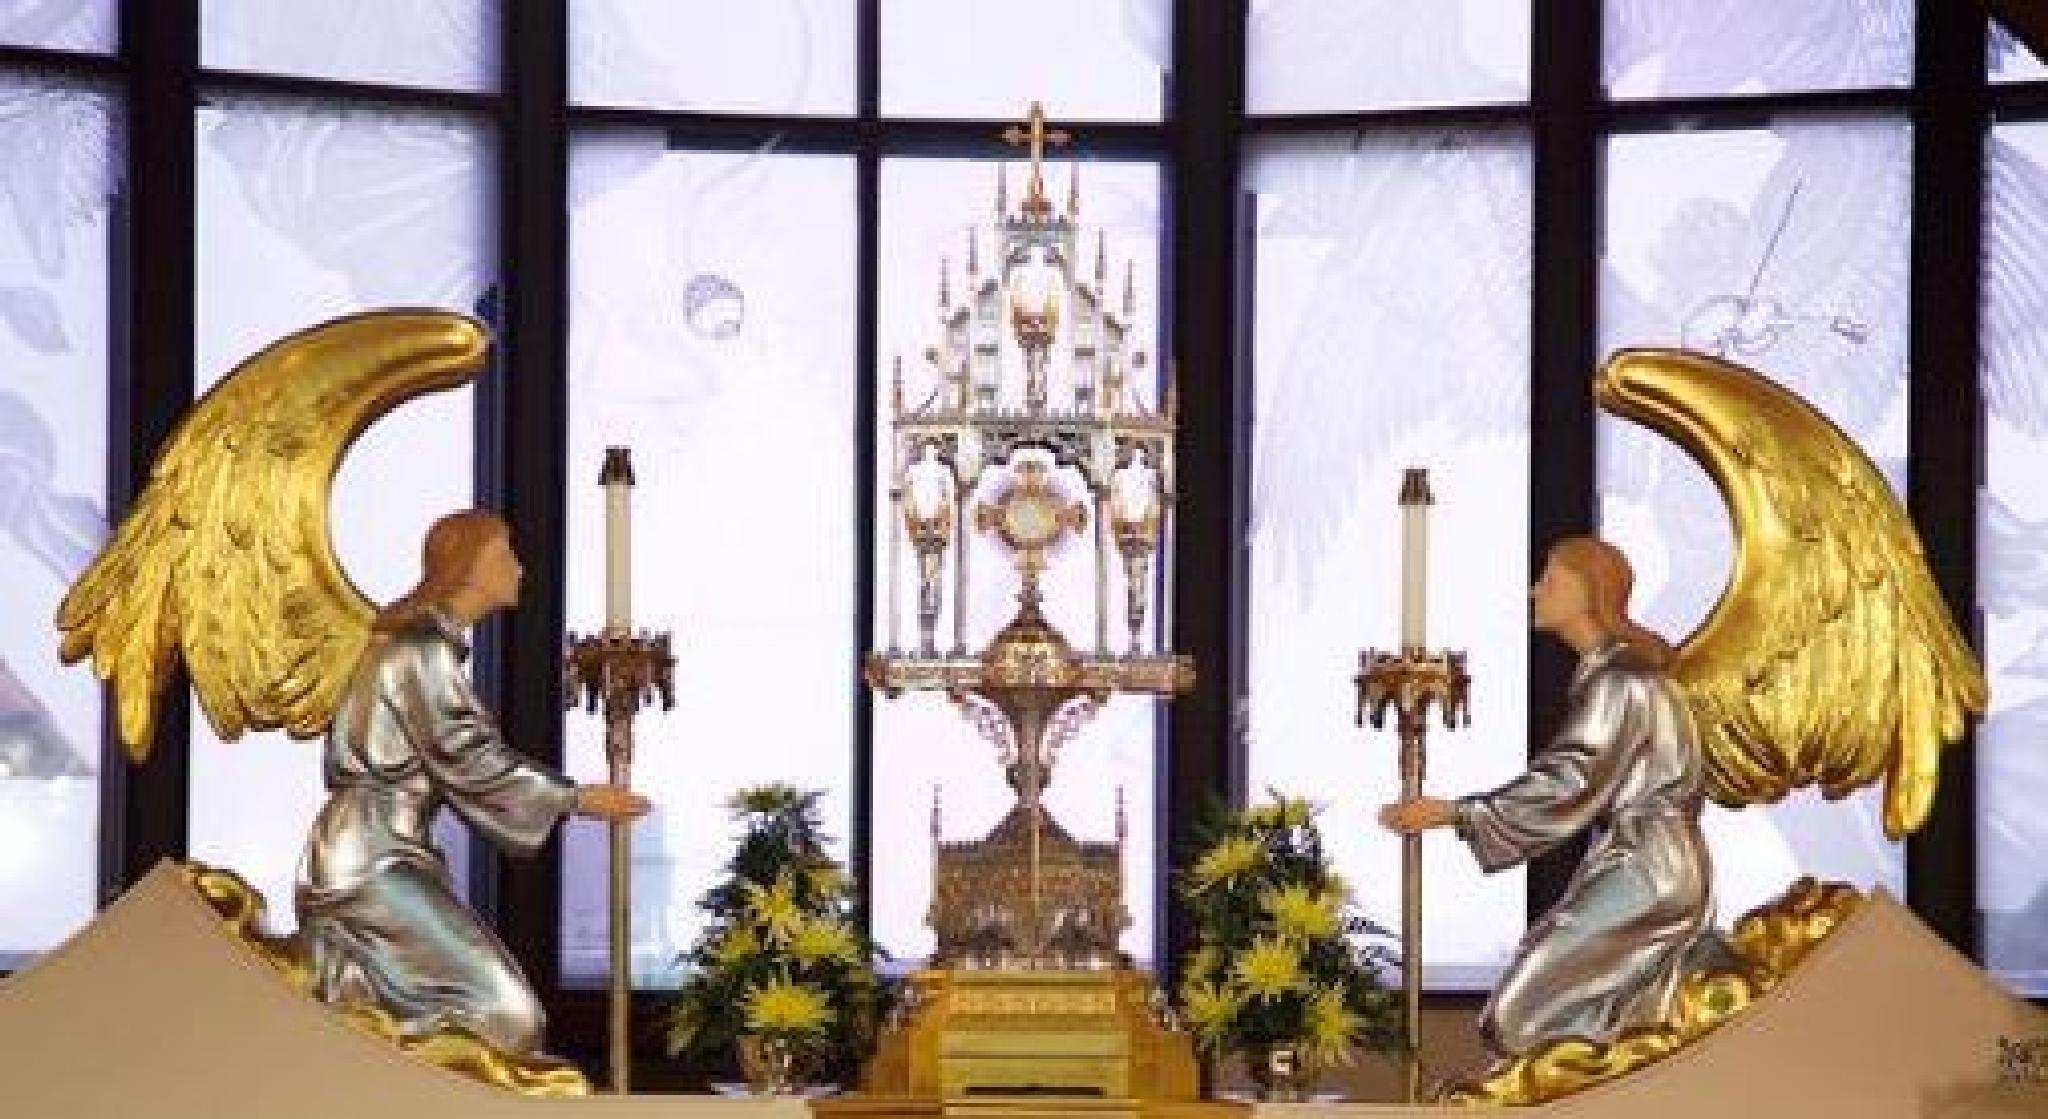 Adoration of the Holy Eucharist (1) by chamberlinangela